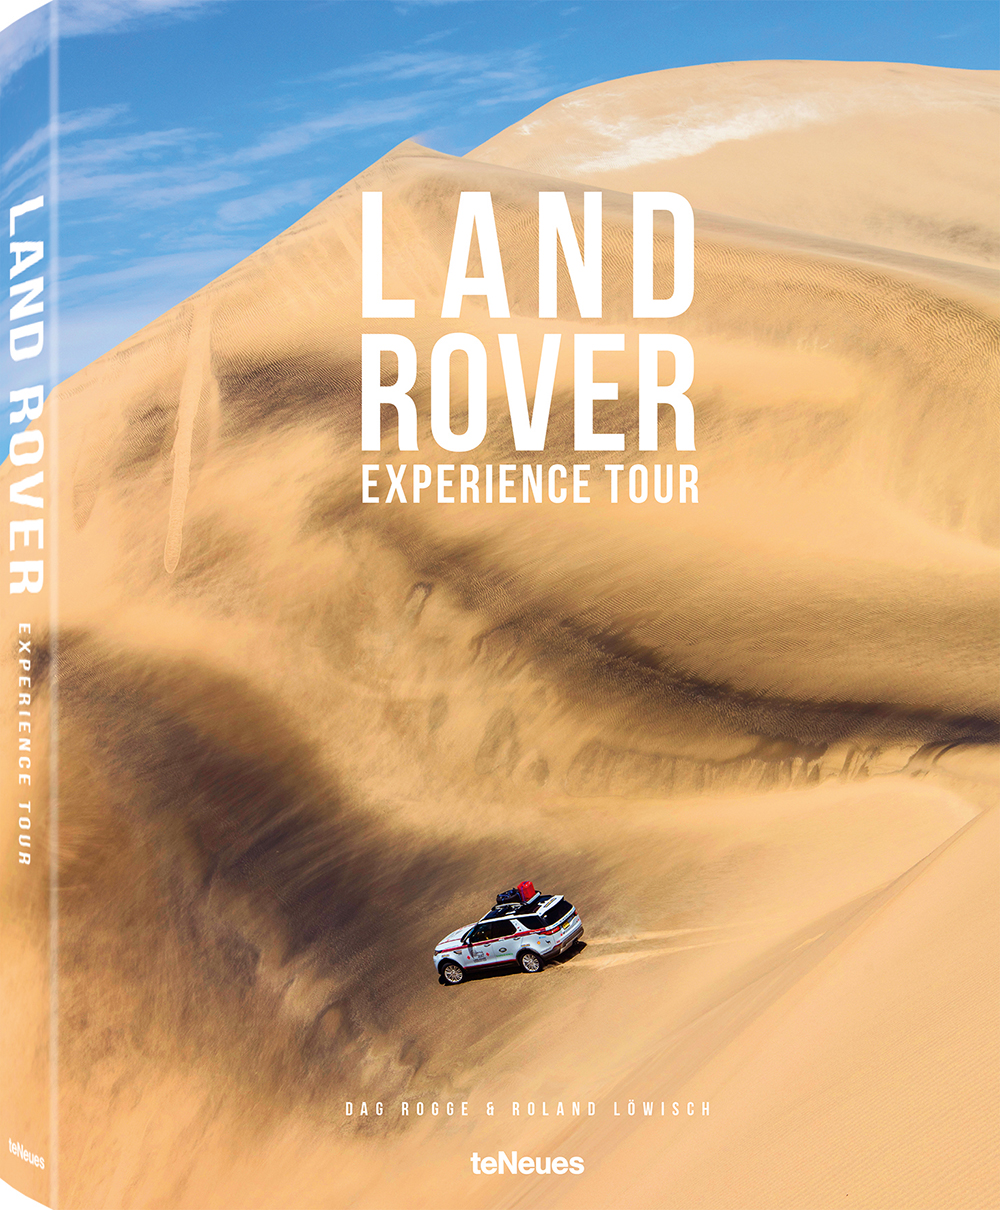 © LAND ROVER EXPERIENCE TOUR - EXTENDED & REVISED EDITION, published by teNeues, € 65,  www.teneues.com .  Peru,  Photo © Jaguar Land Rover Deutschland GmbH, photo: Craig Pusey